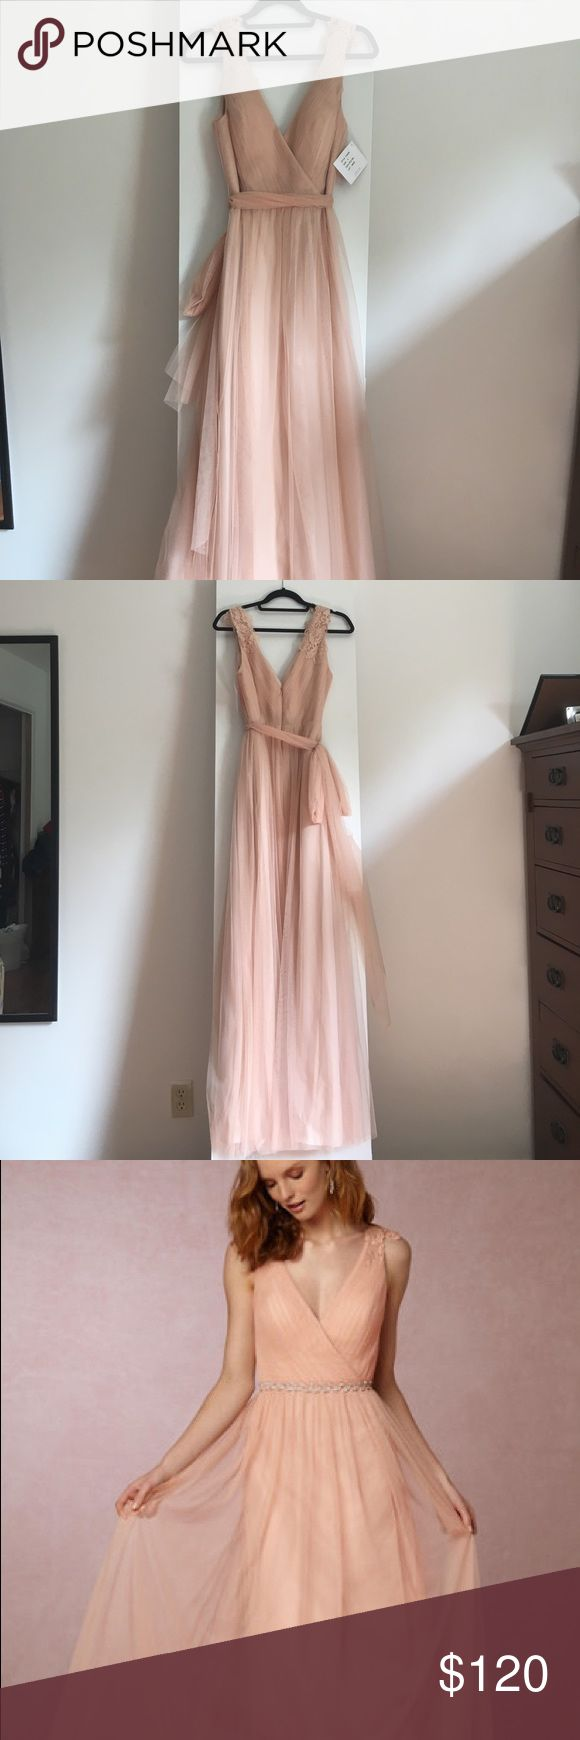 Selling this BHLDN Pippa dress by Watters Size 6 in Aurora on Poshmark! My username is: faltreyu. #shopmycloset #poshmark #fashion #shopping #style #forsale #Watters #Dresses & Skirts